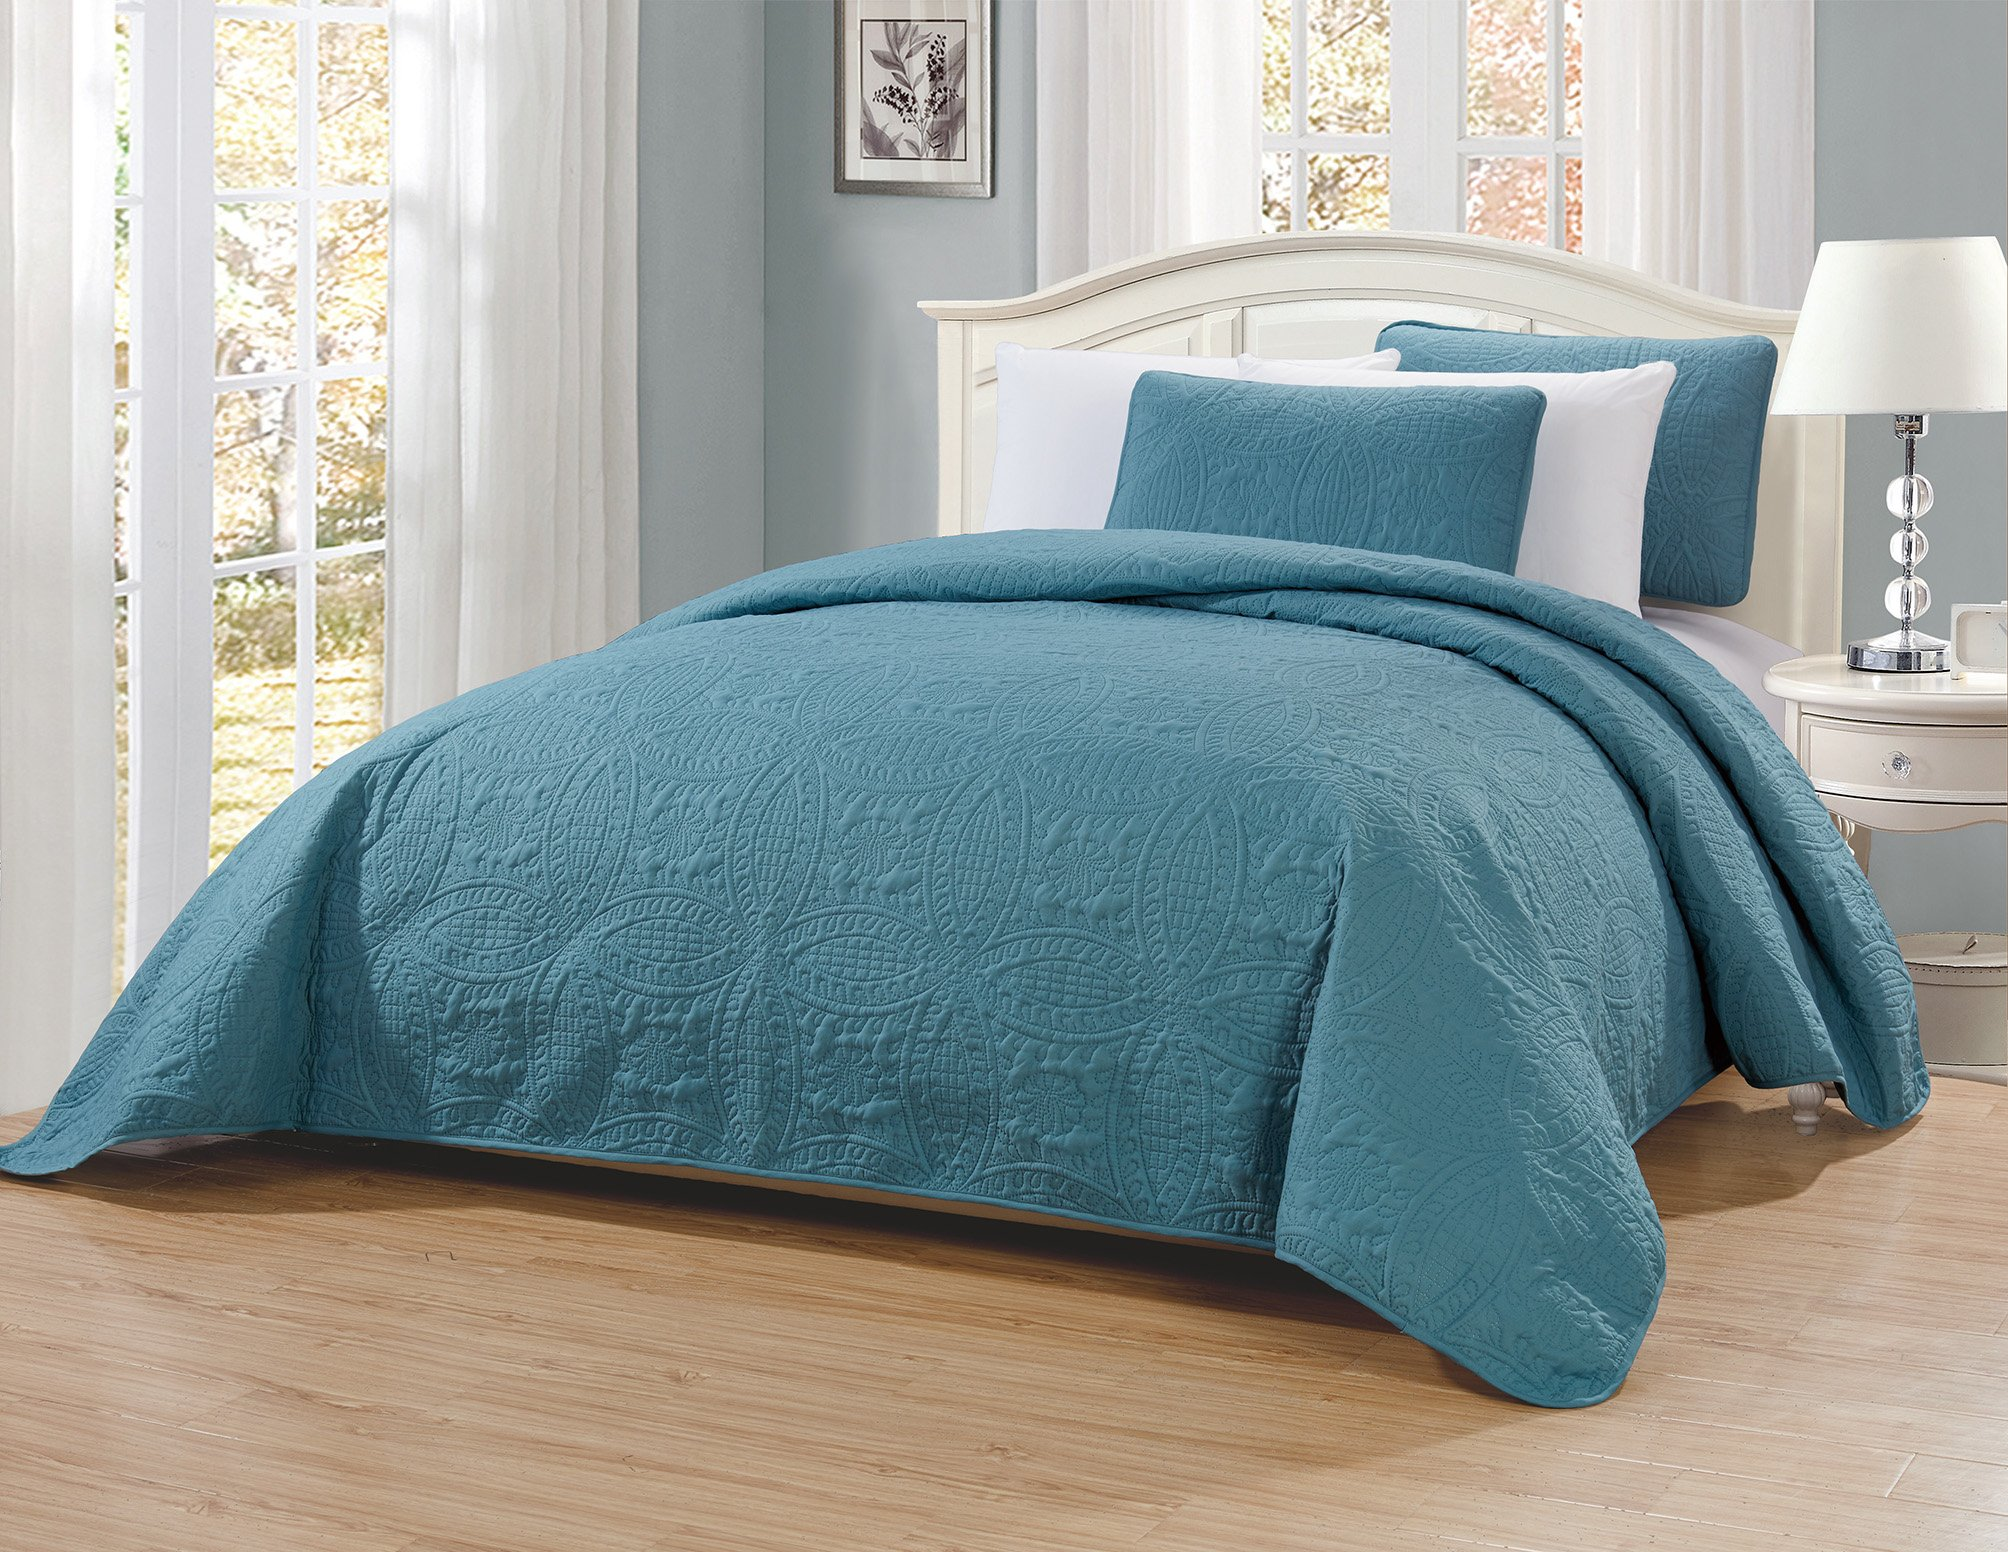 Fancy Collection 3pc Full/Queen Embossed Oversized Coverlet Bedspread Set Solid Spa Blue New